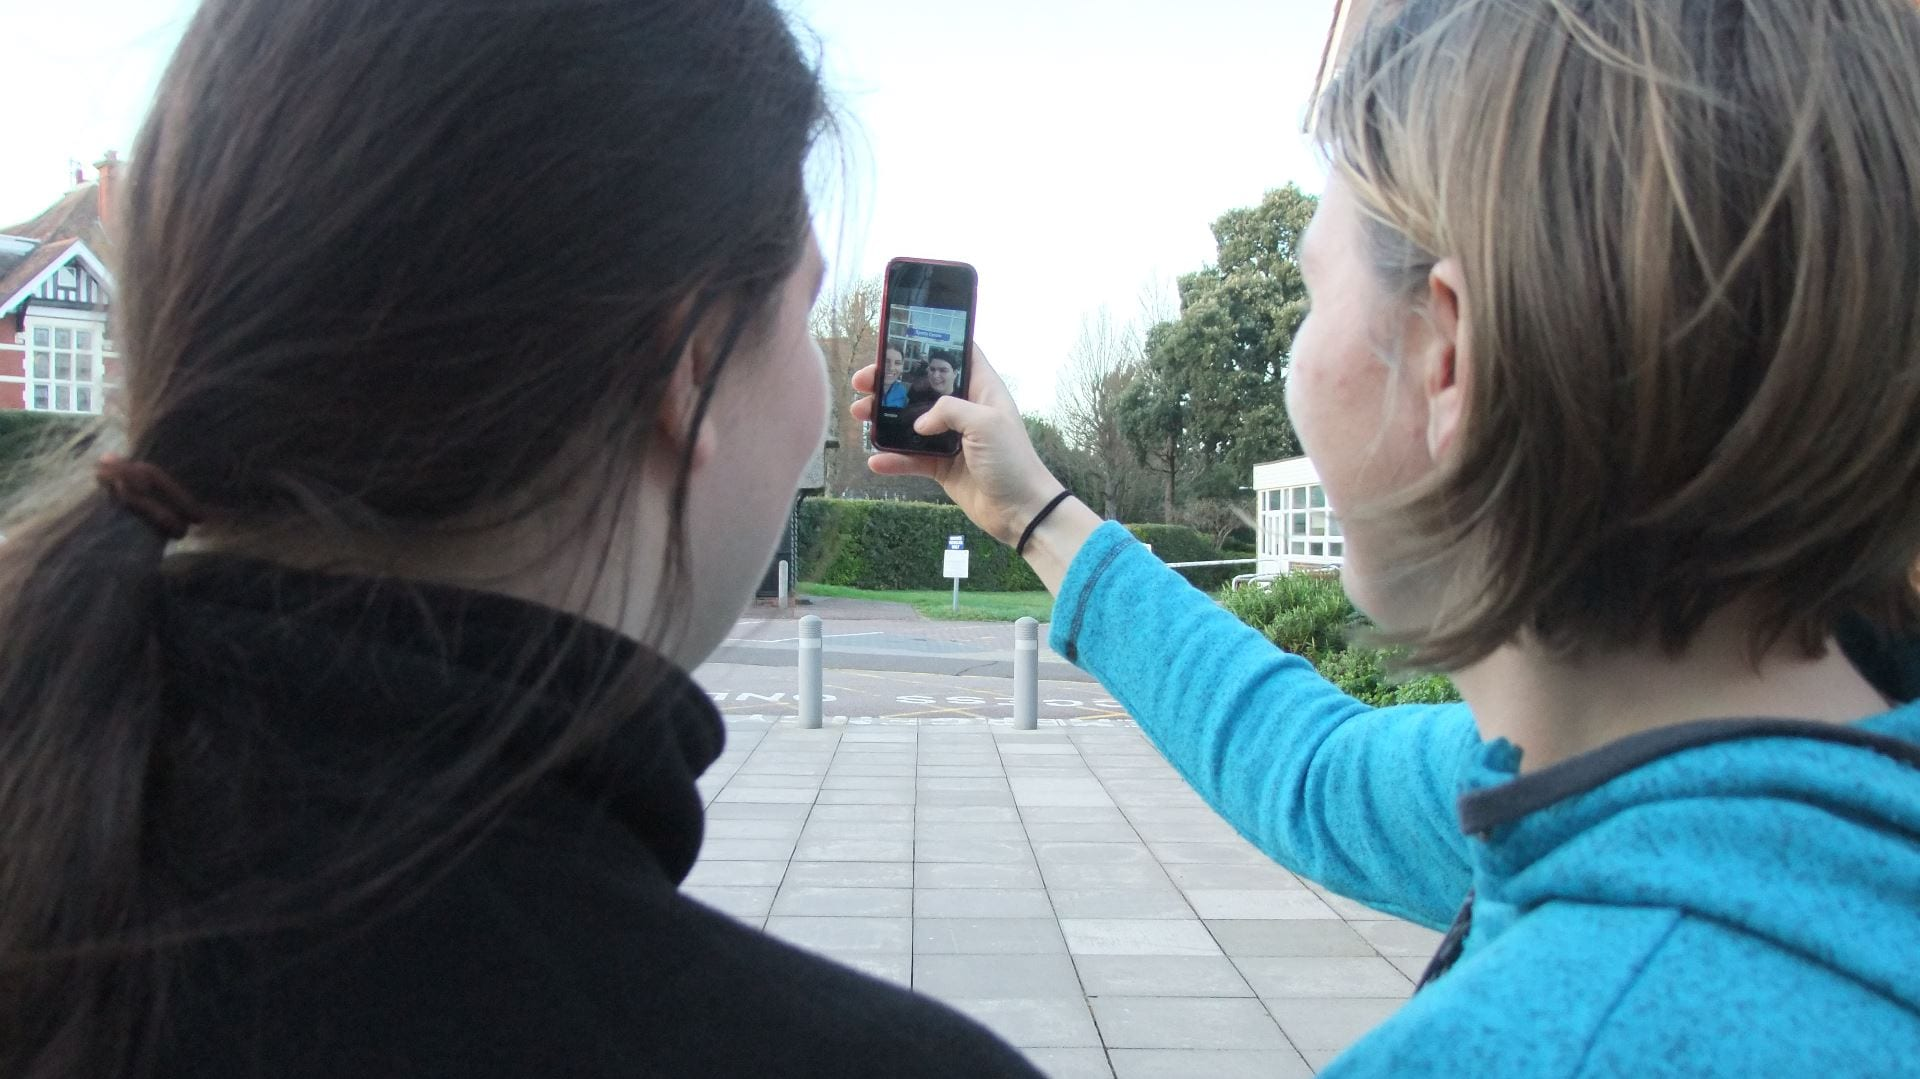 students using their phones